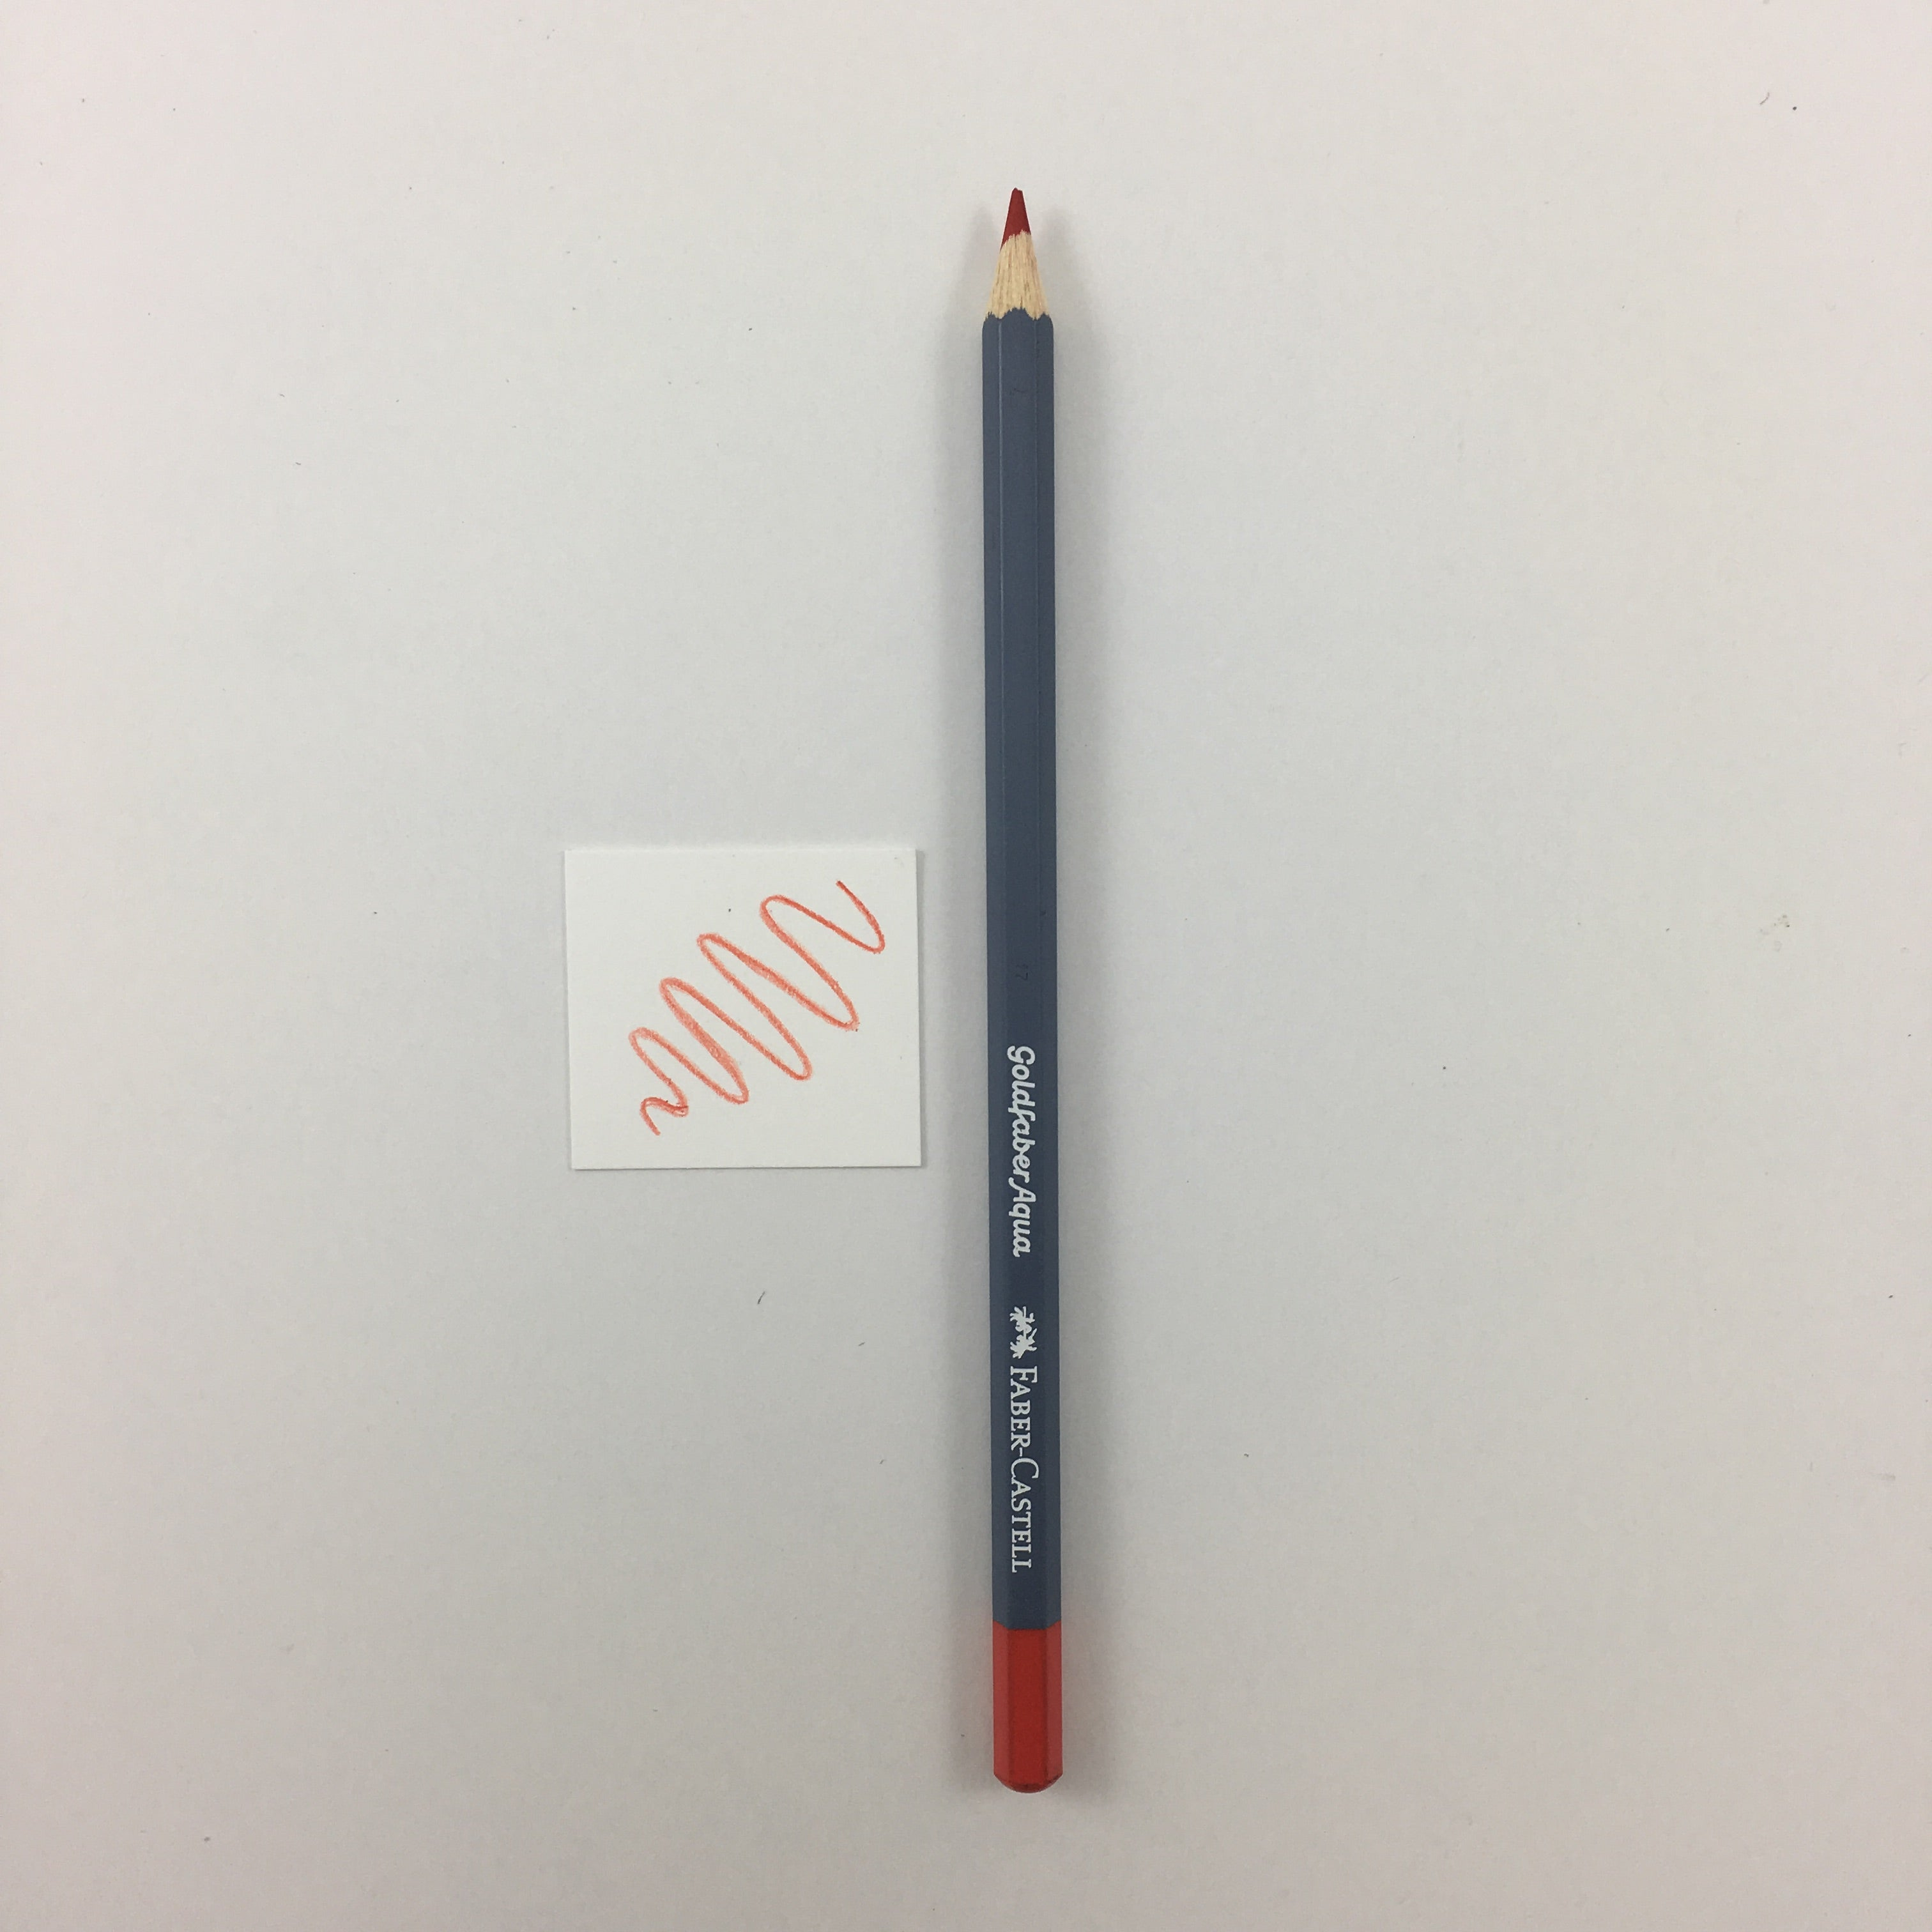 Faber-Castell Goldfaber Aqua Watercolor Pencils - Individuals - 118 - Scarlet Red by Faber-Castell - K. A. Artist Shop